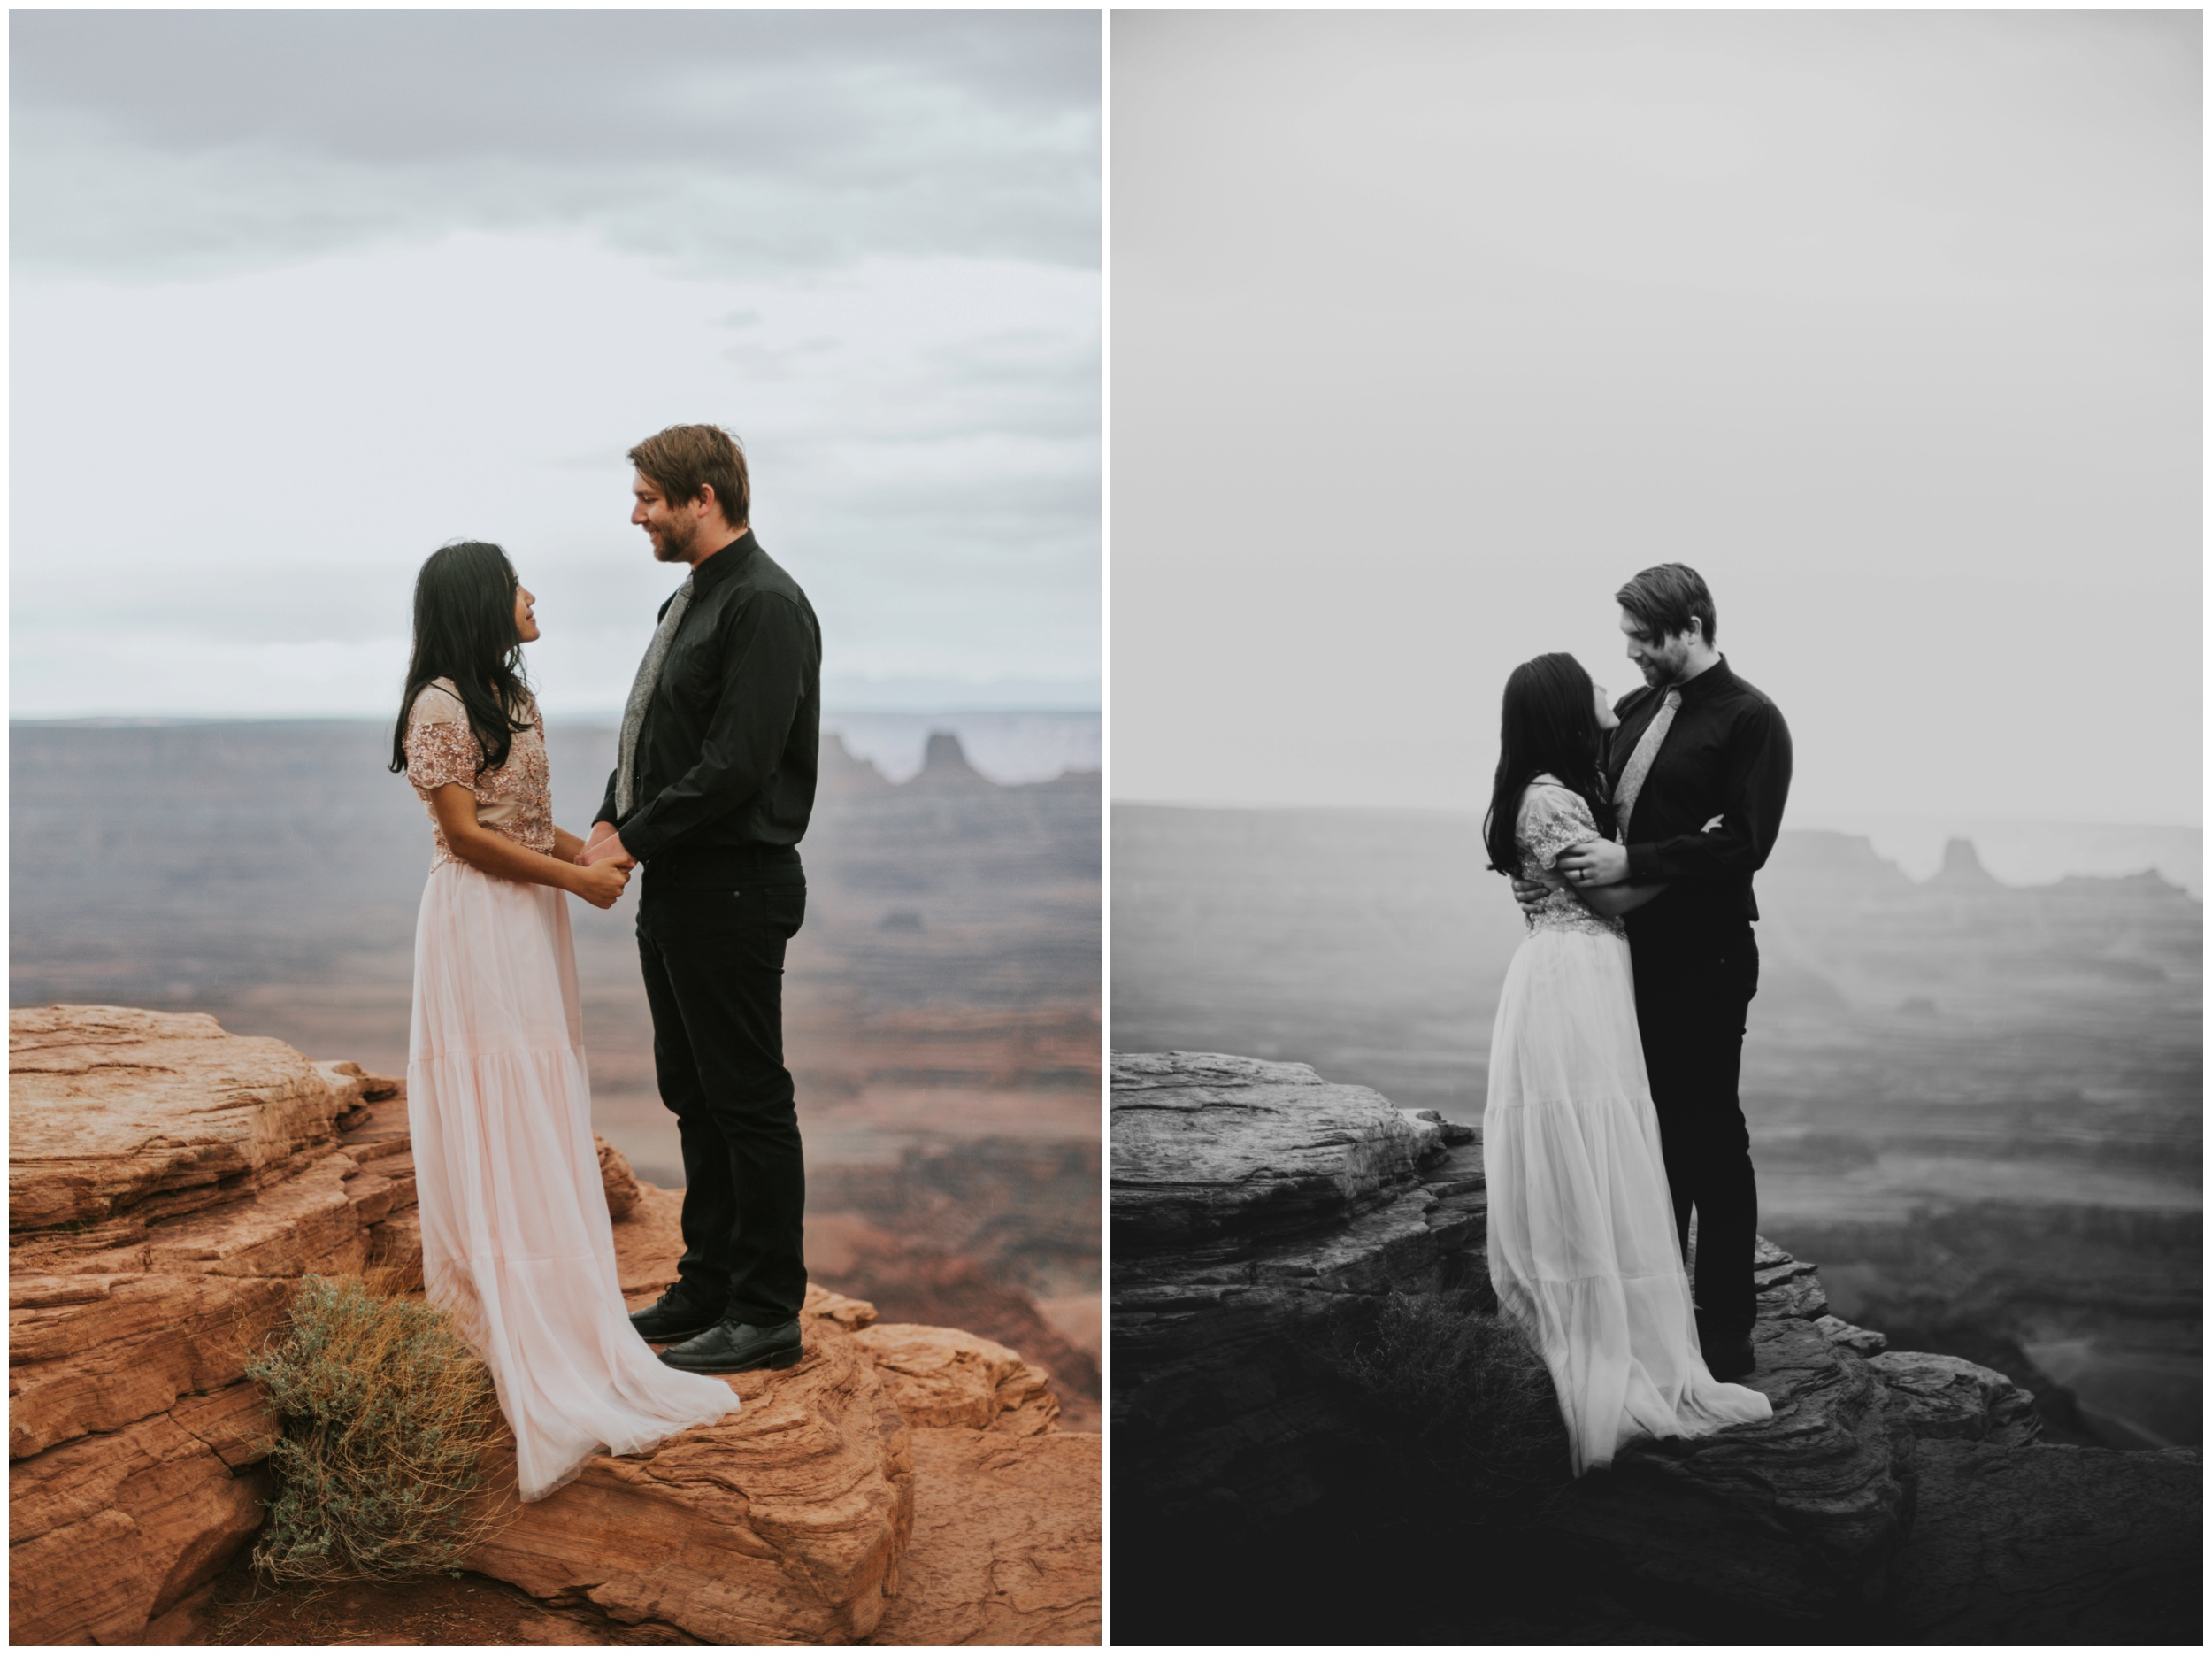 Couple standing on the edge of the world together at Dead Horse Point Overlook | Elopement Photographer www.riversandroadsphotography.com